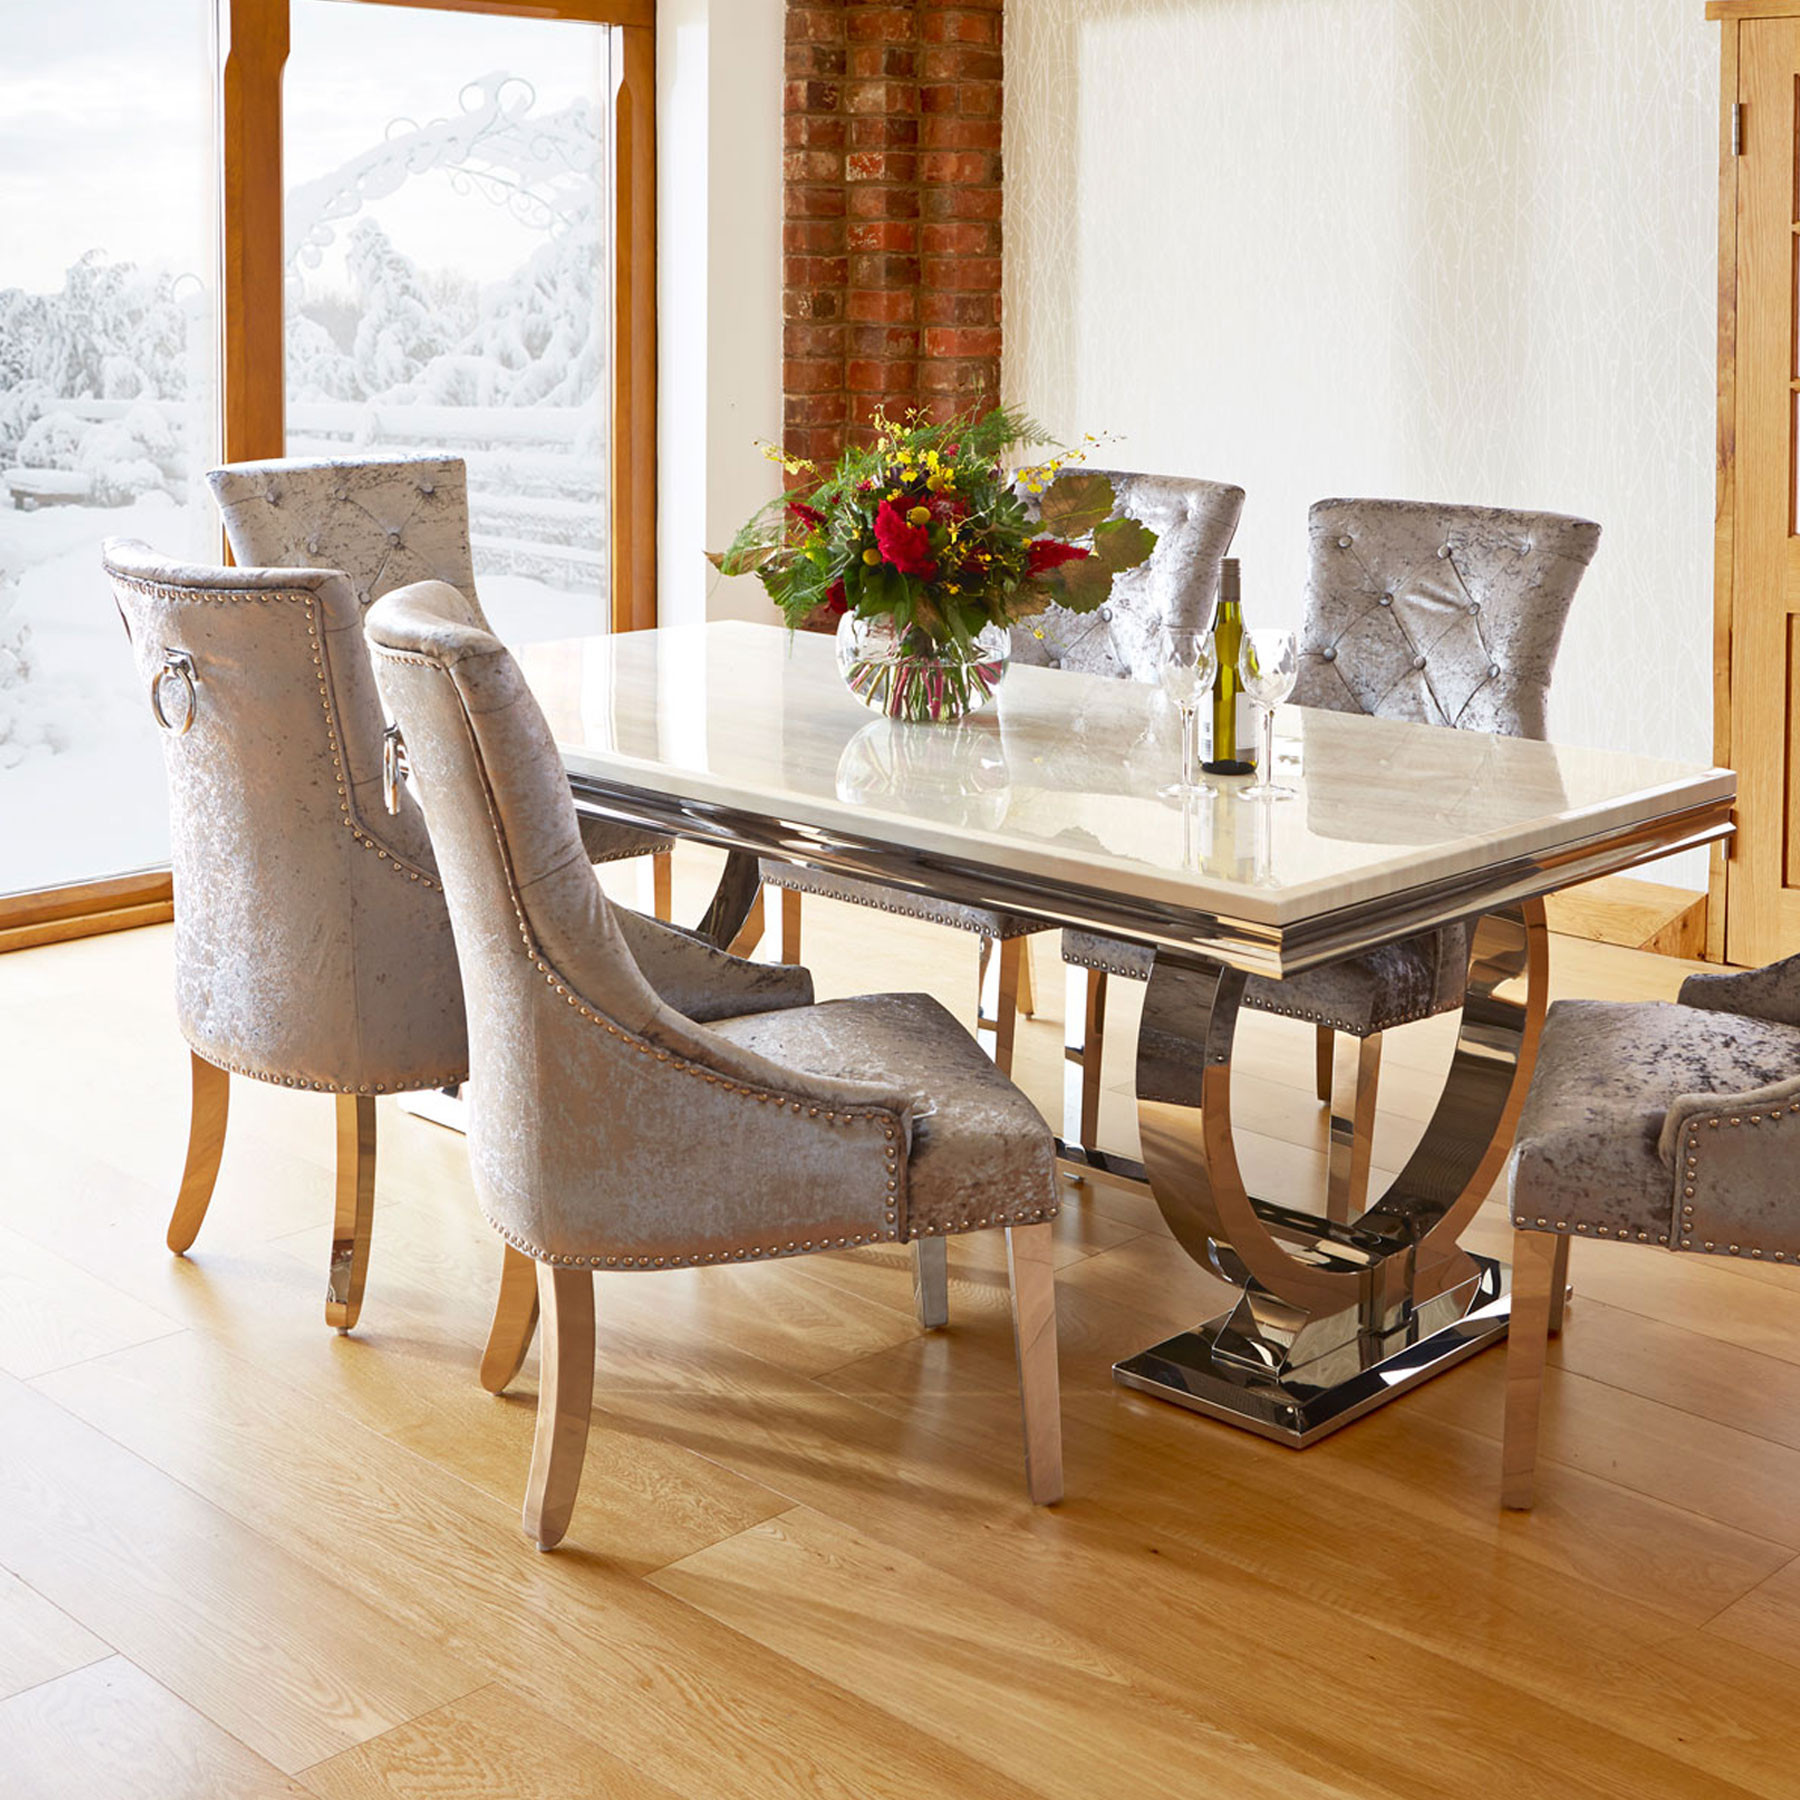 Dining table photo